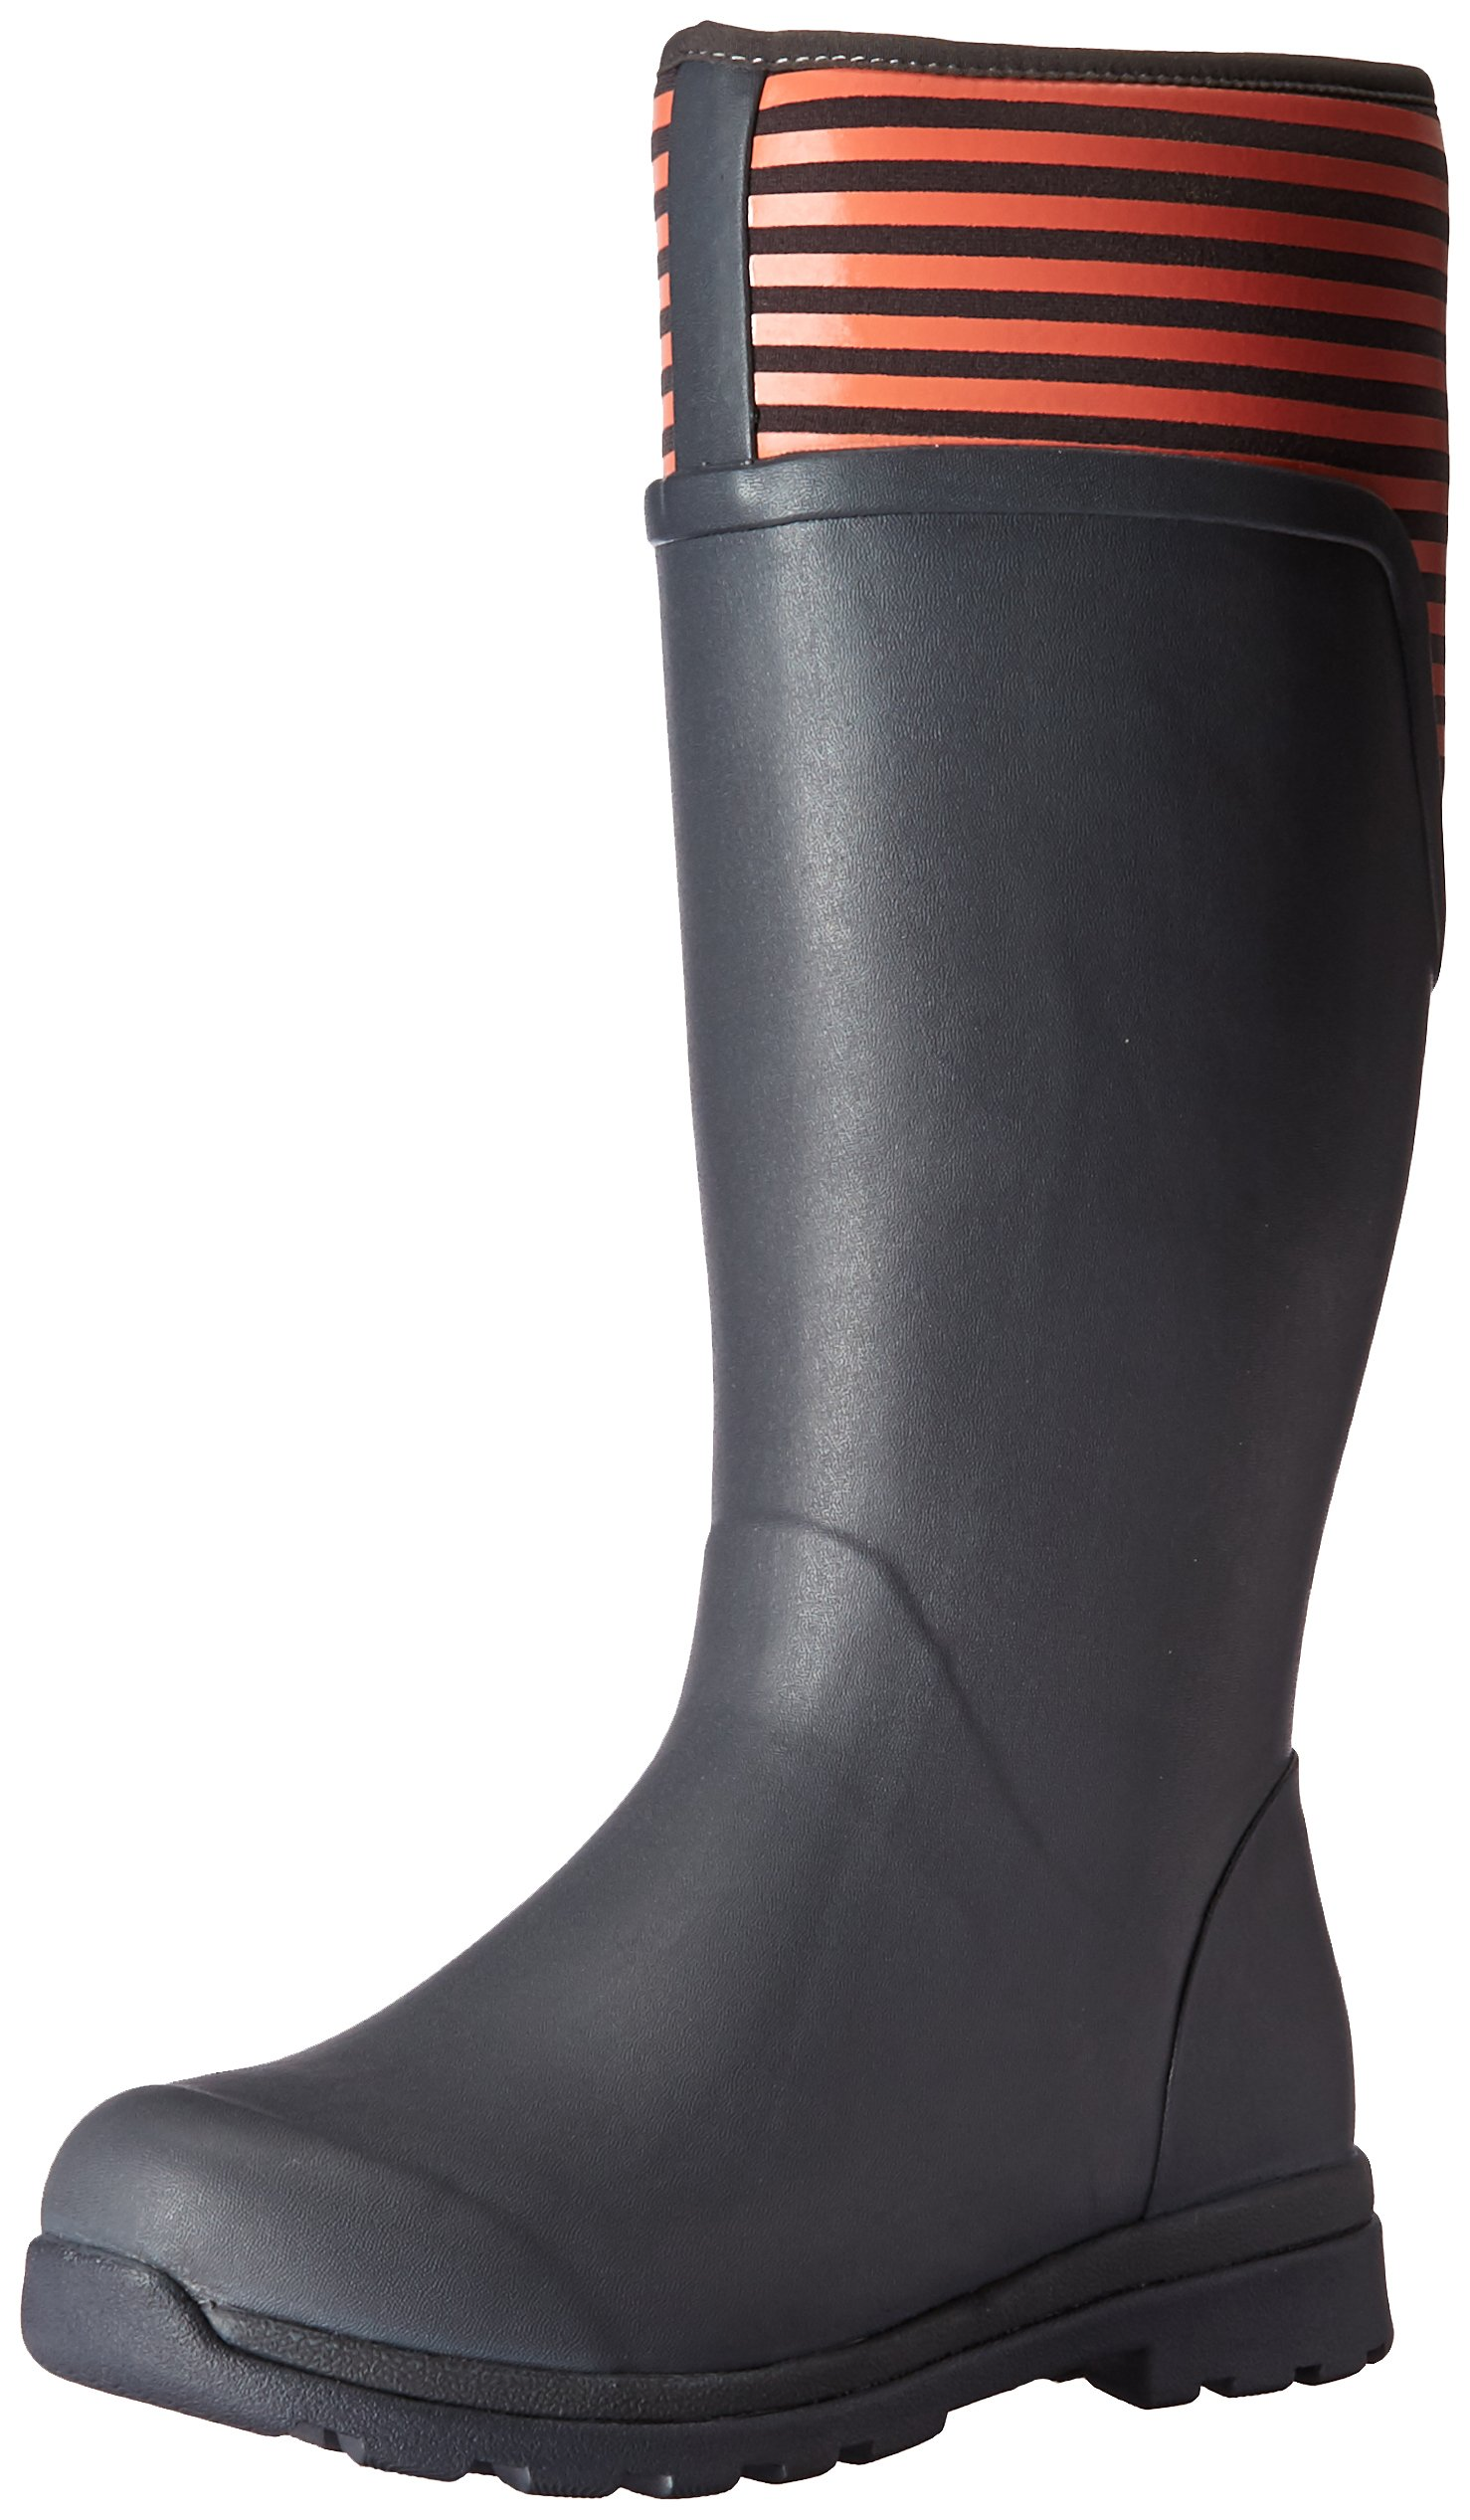 Muck Boot Women's Cambridge Tall Snow Boot, Gray With Coral Stripe, 8 B US